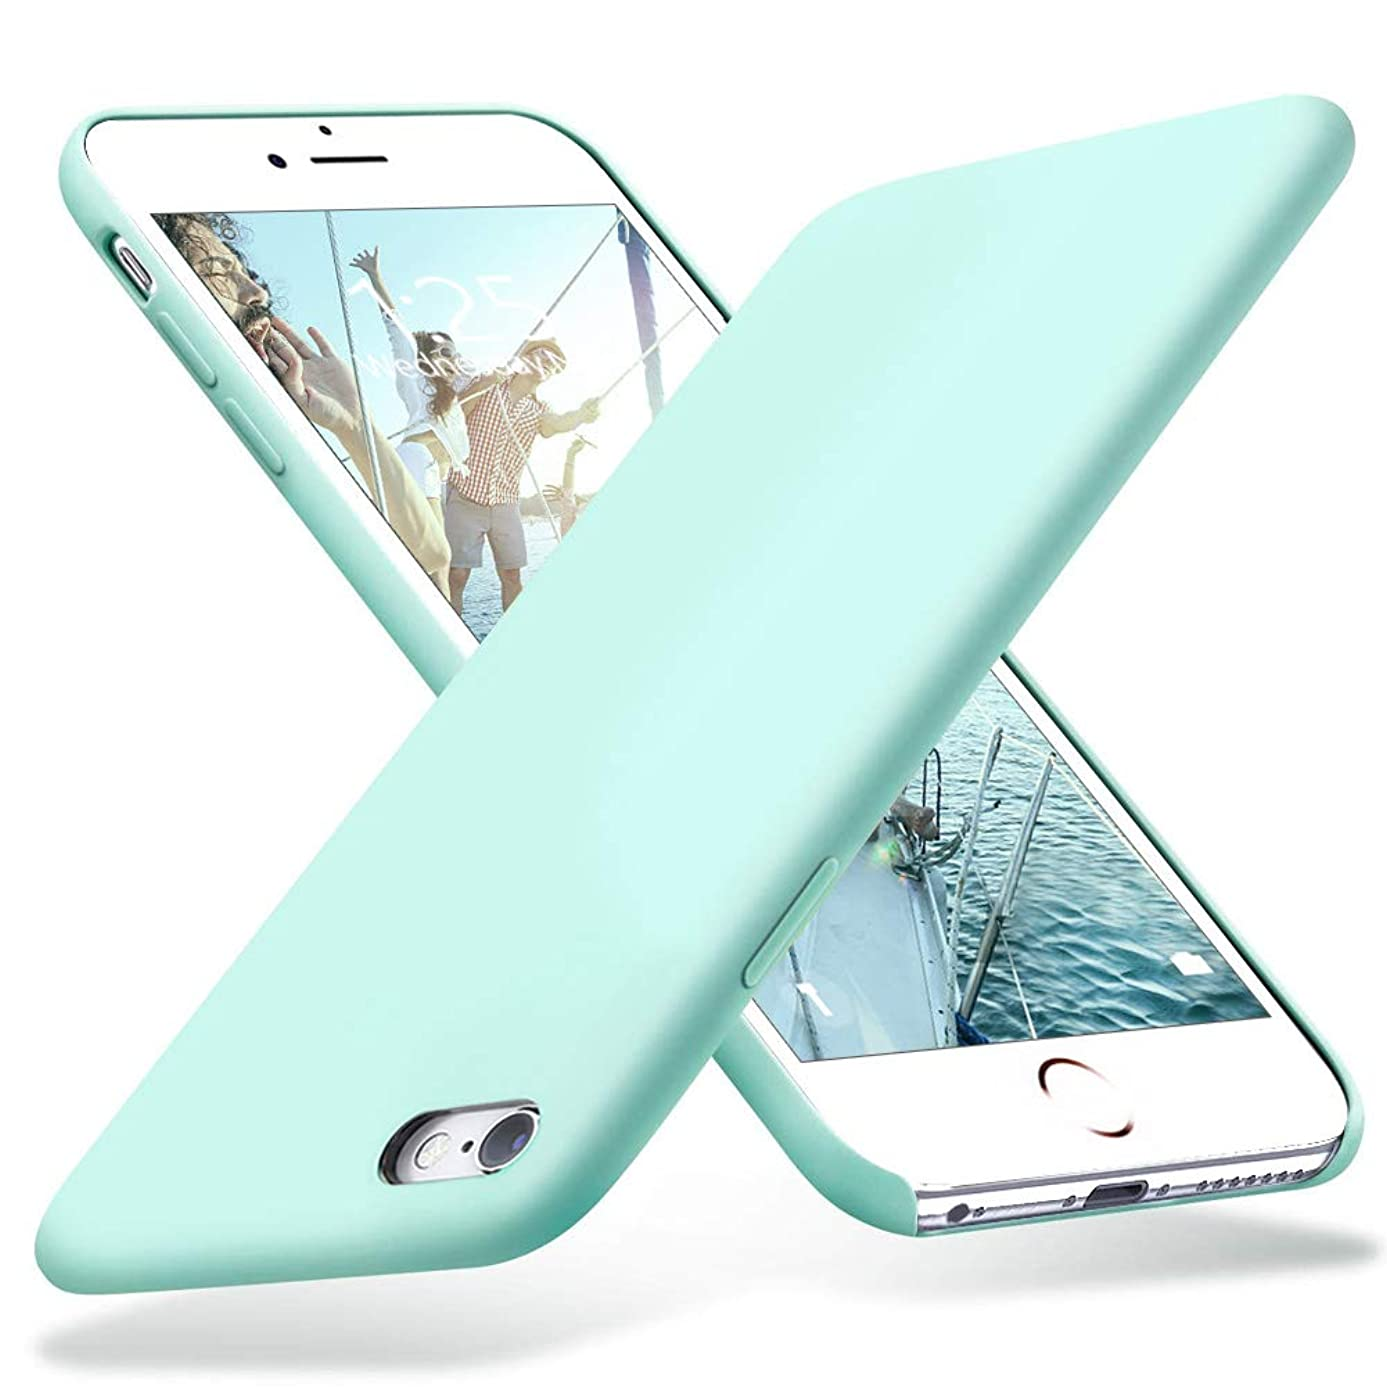 KUMEEK iPhone 6s Plus Case, iPhone 6 Plus Case, Liquid Silicone Rubber with Soft Microfiber Cloth Cushion Protective Case Thin Slim for iPhone 6s Plus/iPhone 6 Plus - Mint